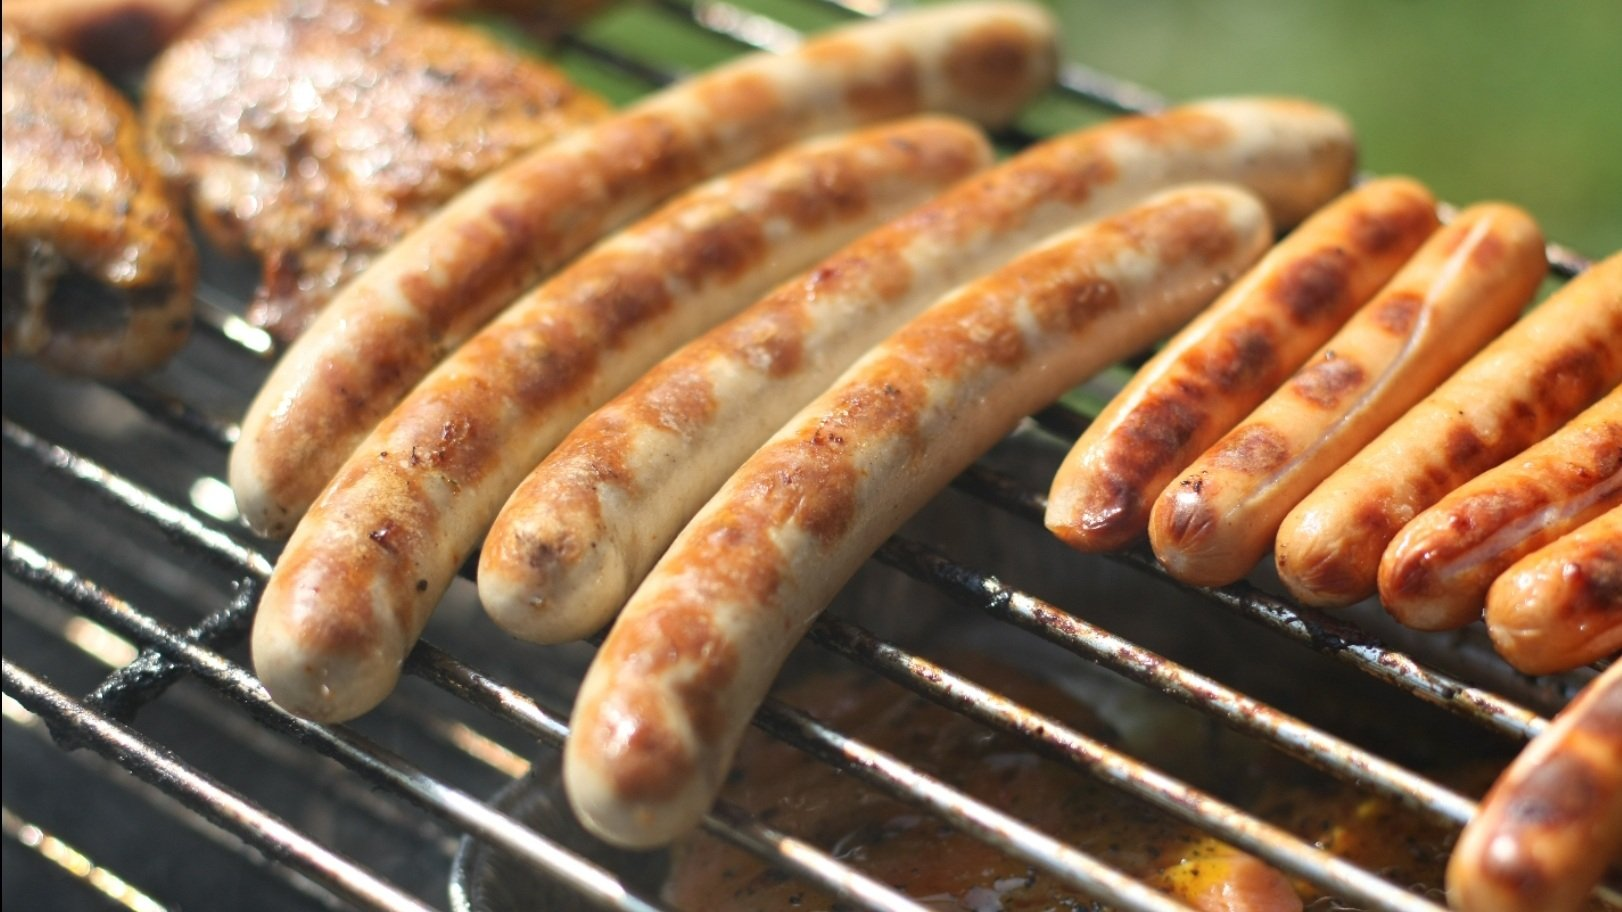 THÜRINGER GERMAN SAUSAGES